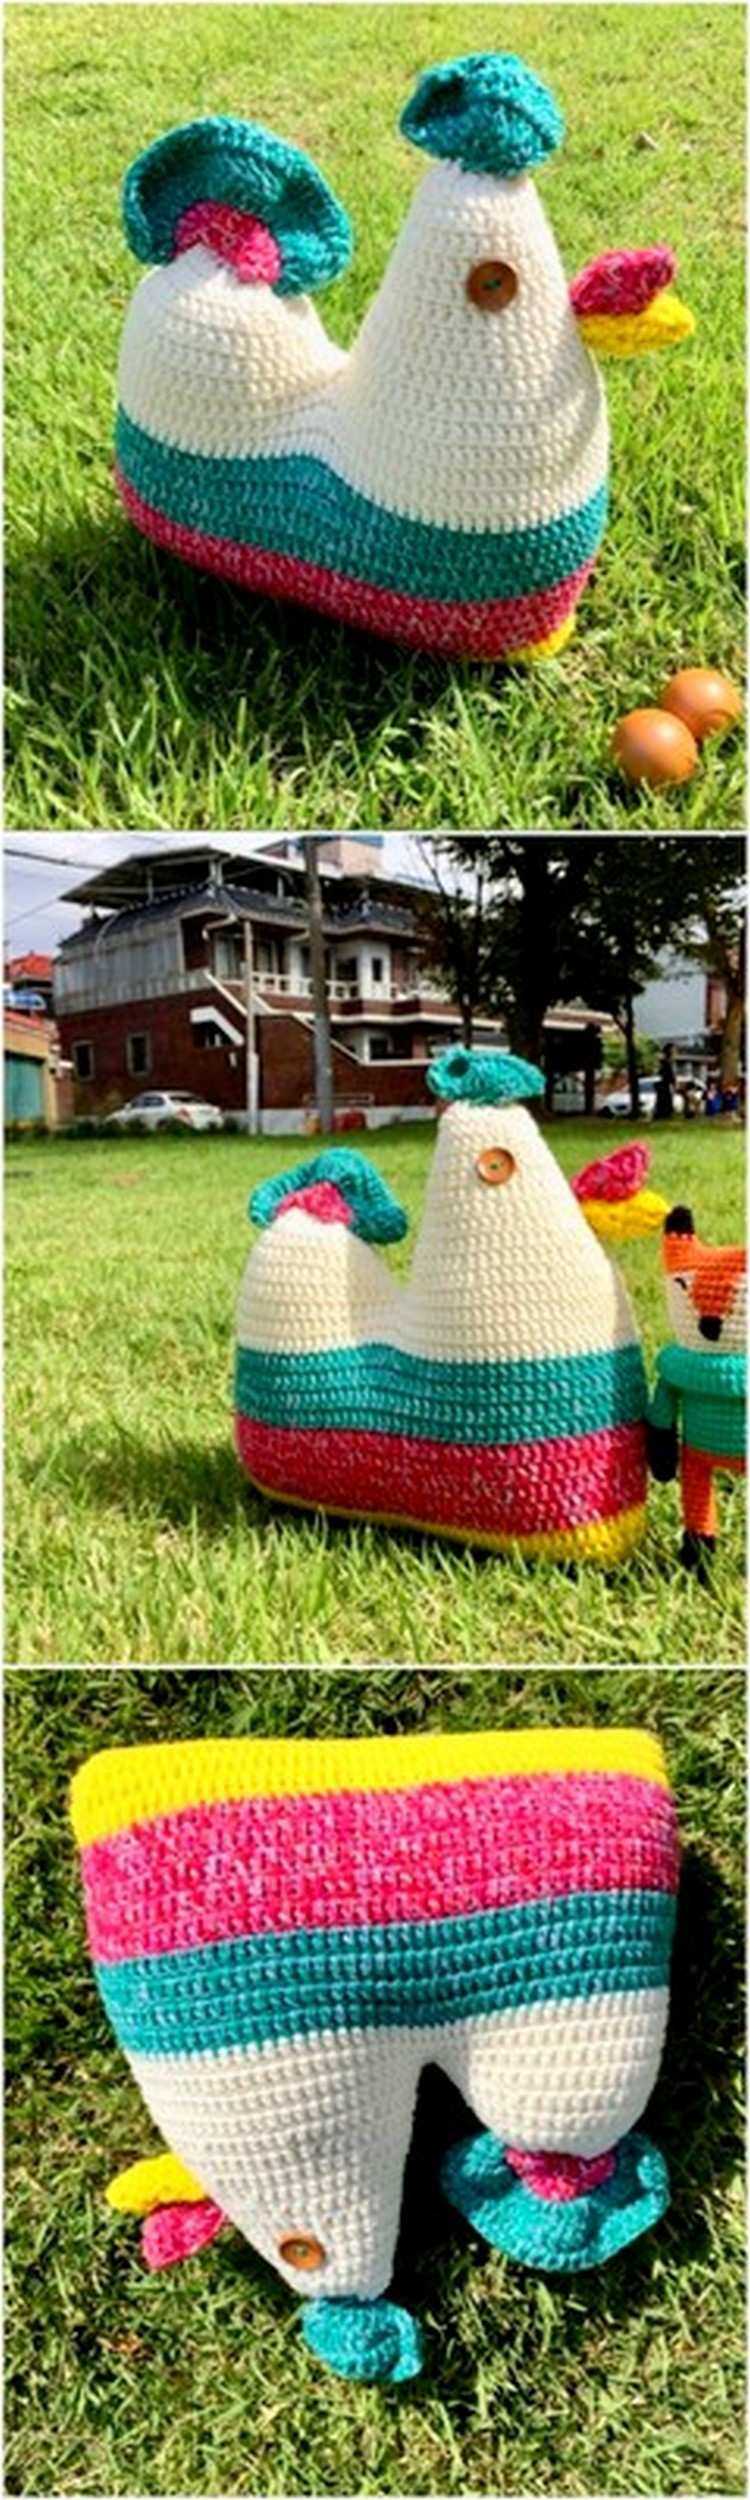 Crochet Small Hen Free Crochet Pattern